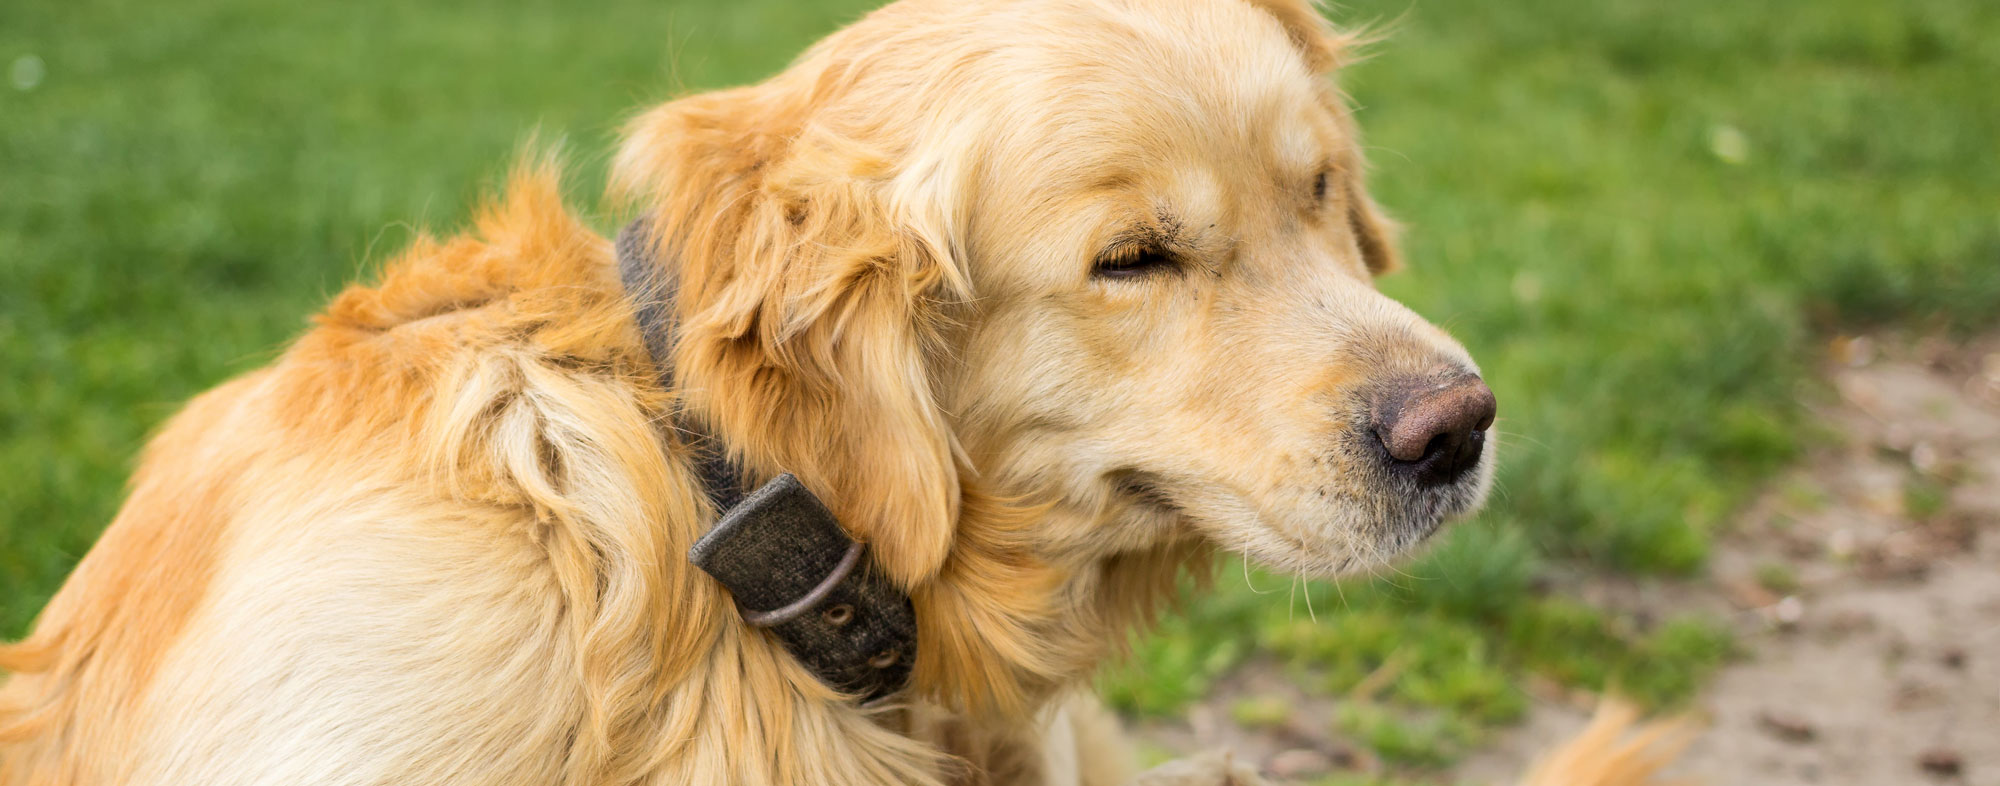 Symptoms of allergies in dogs include sneezing, as in humans